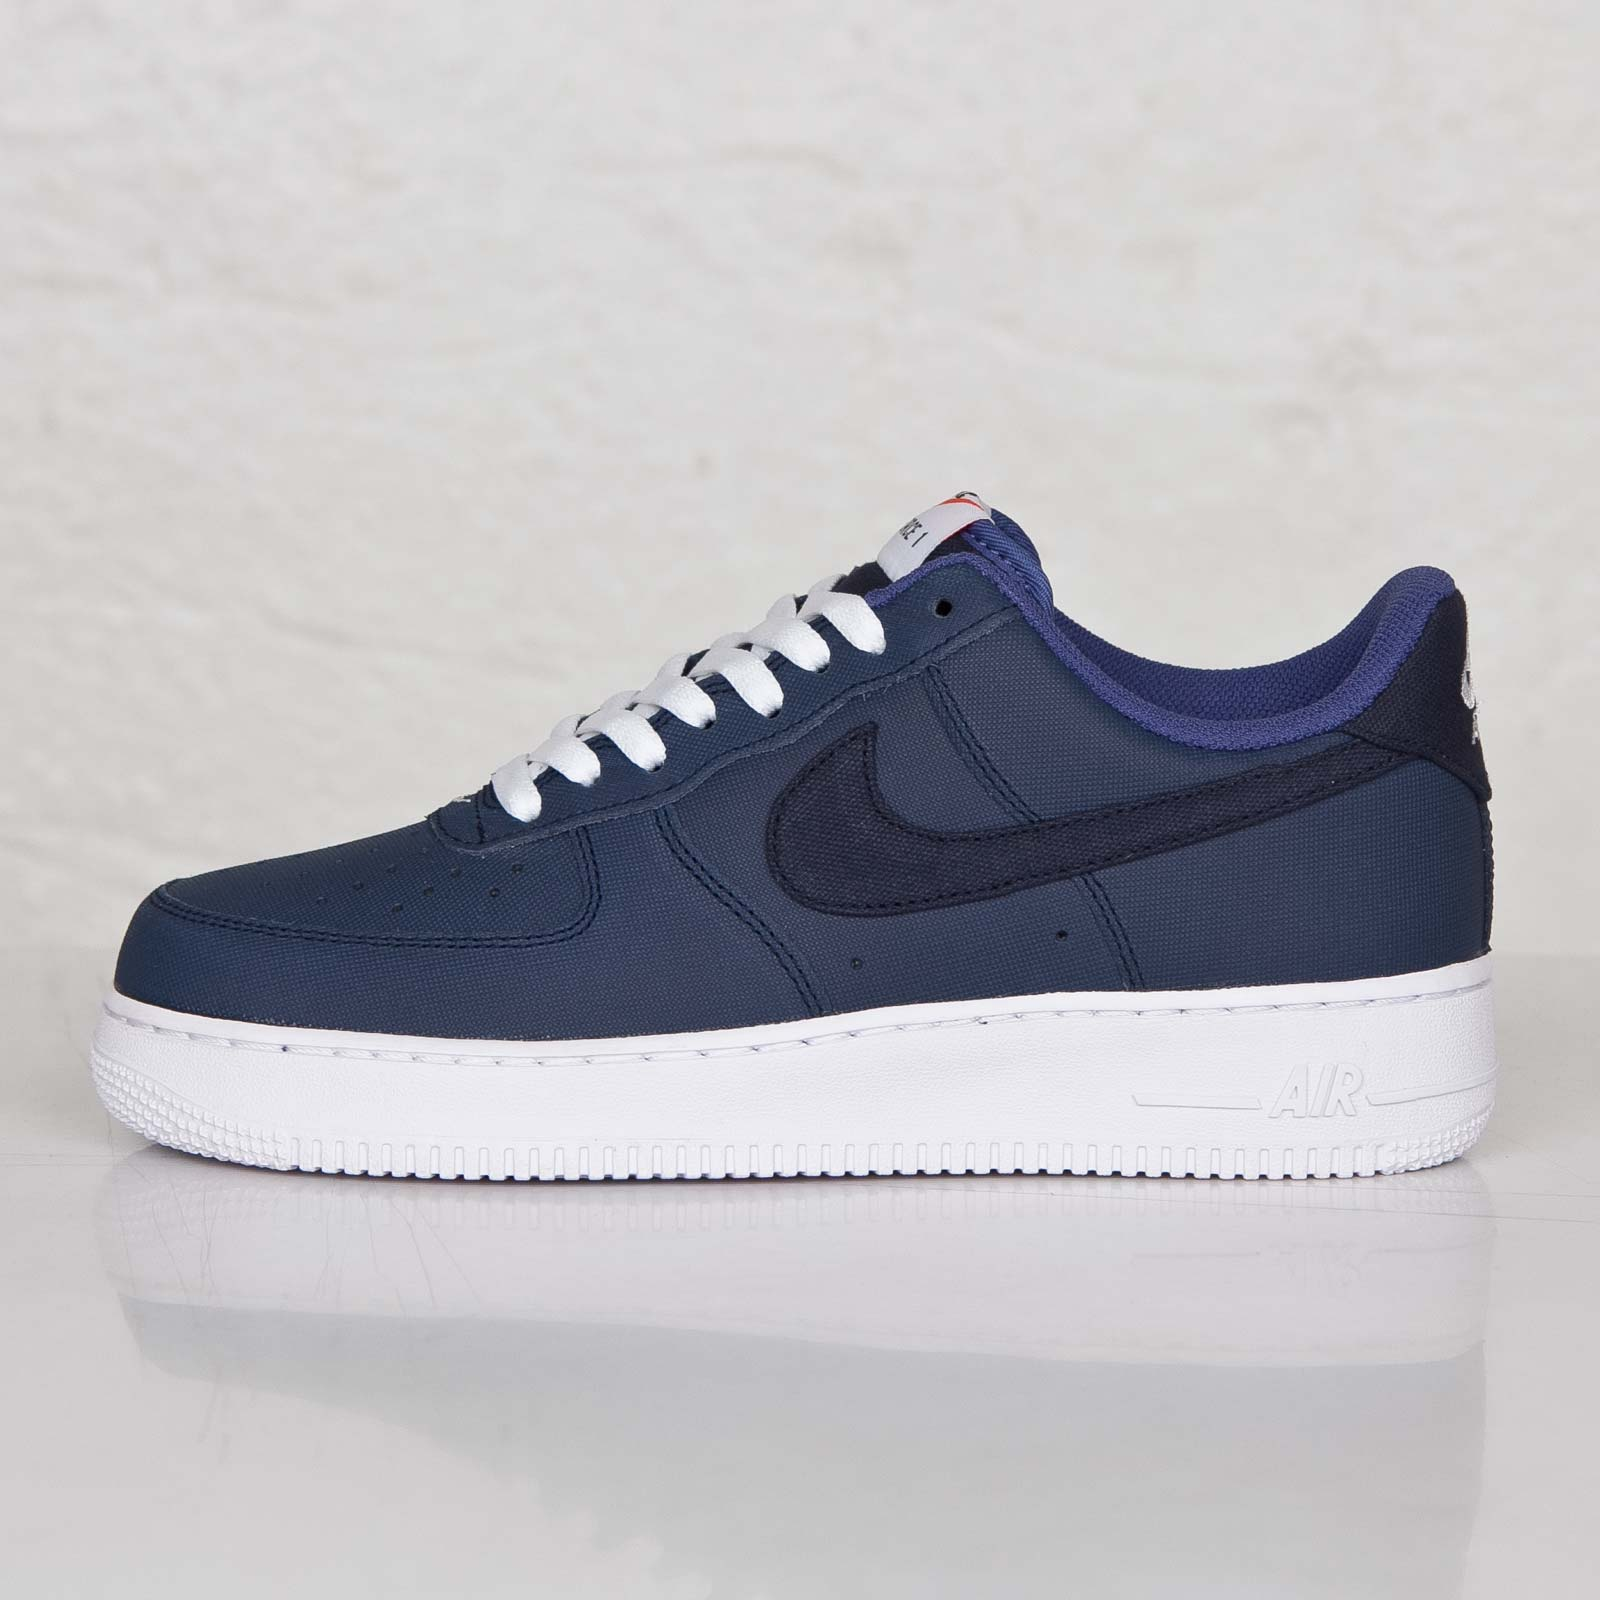 classic fit c5e47 99549 Nike Air Force 1 Low Color  Obsidian Obsidian-White-Blue Legend Style   488298-431. NIKE AIR FORCE 1 07 LV8 DARK OBSIDIAN BLUE DENIM AFRO PUNK 823511  402 ...